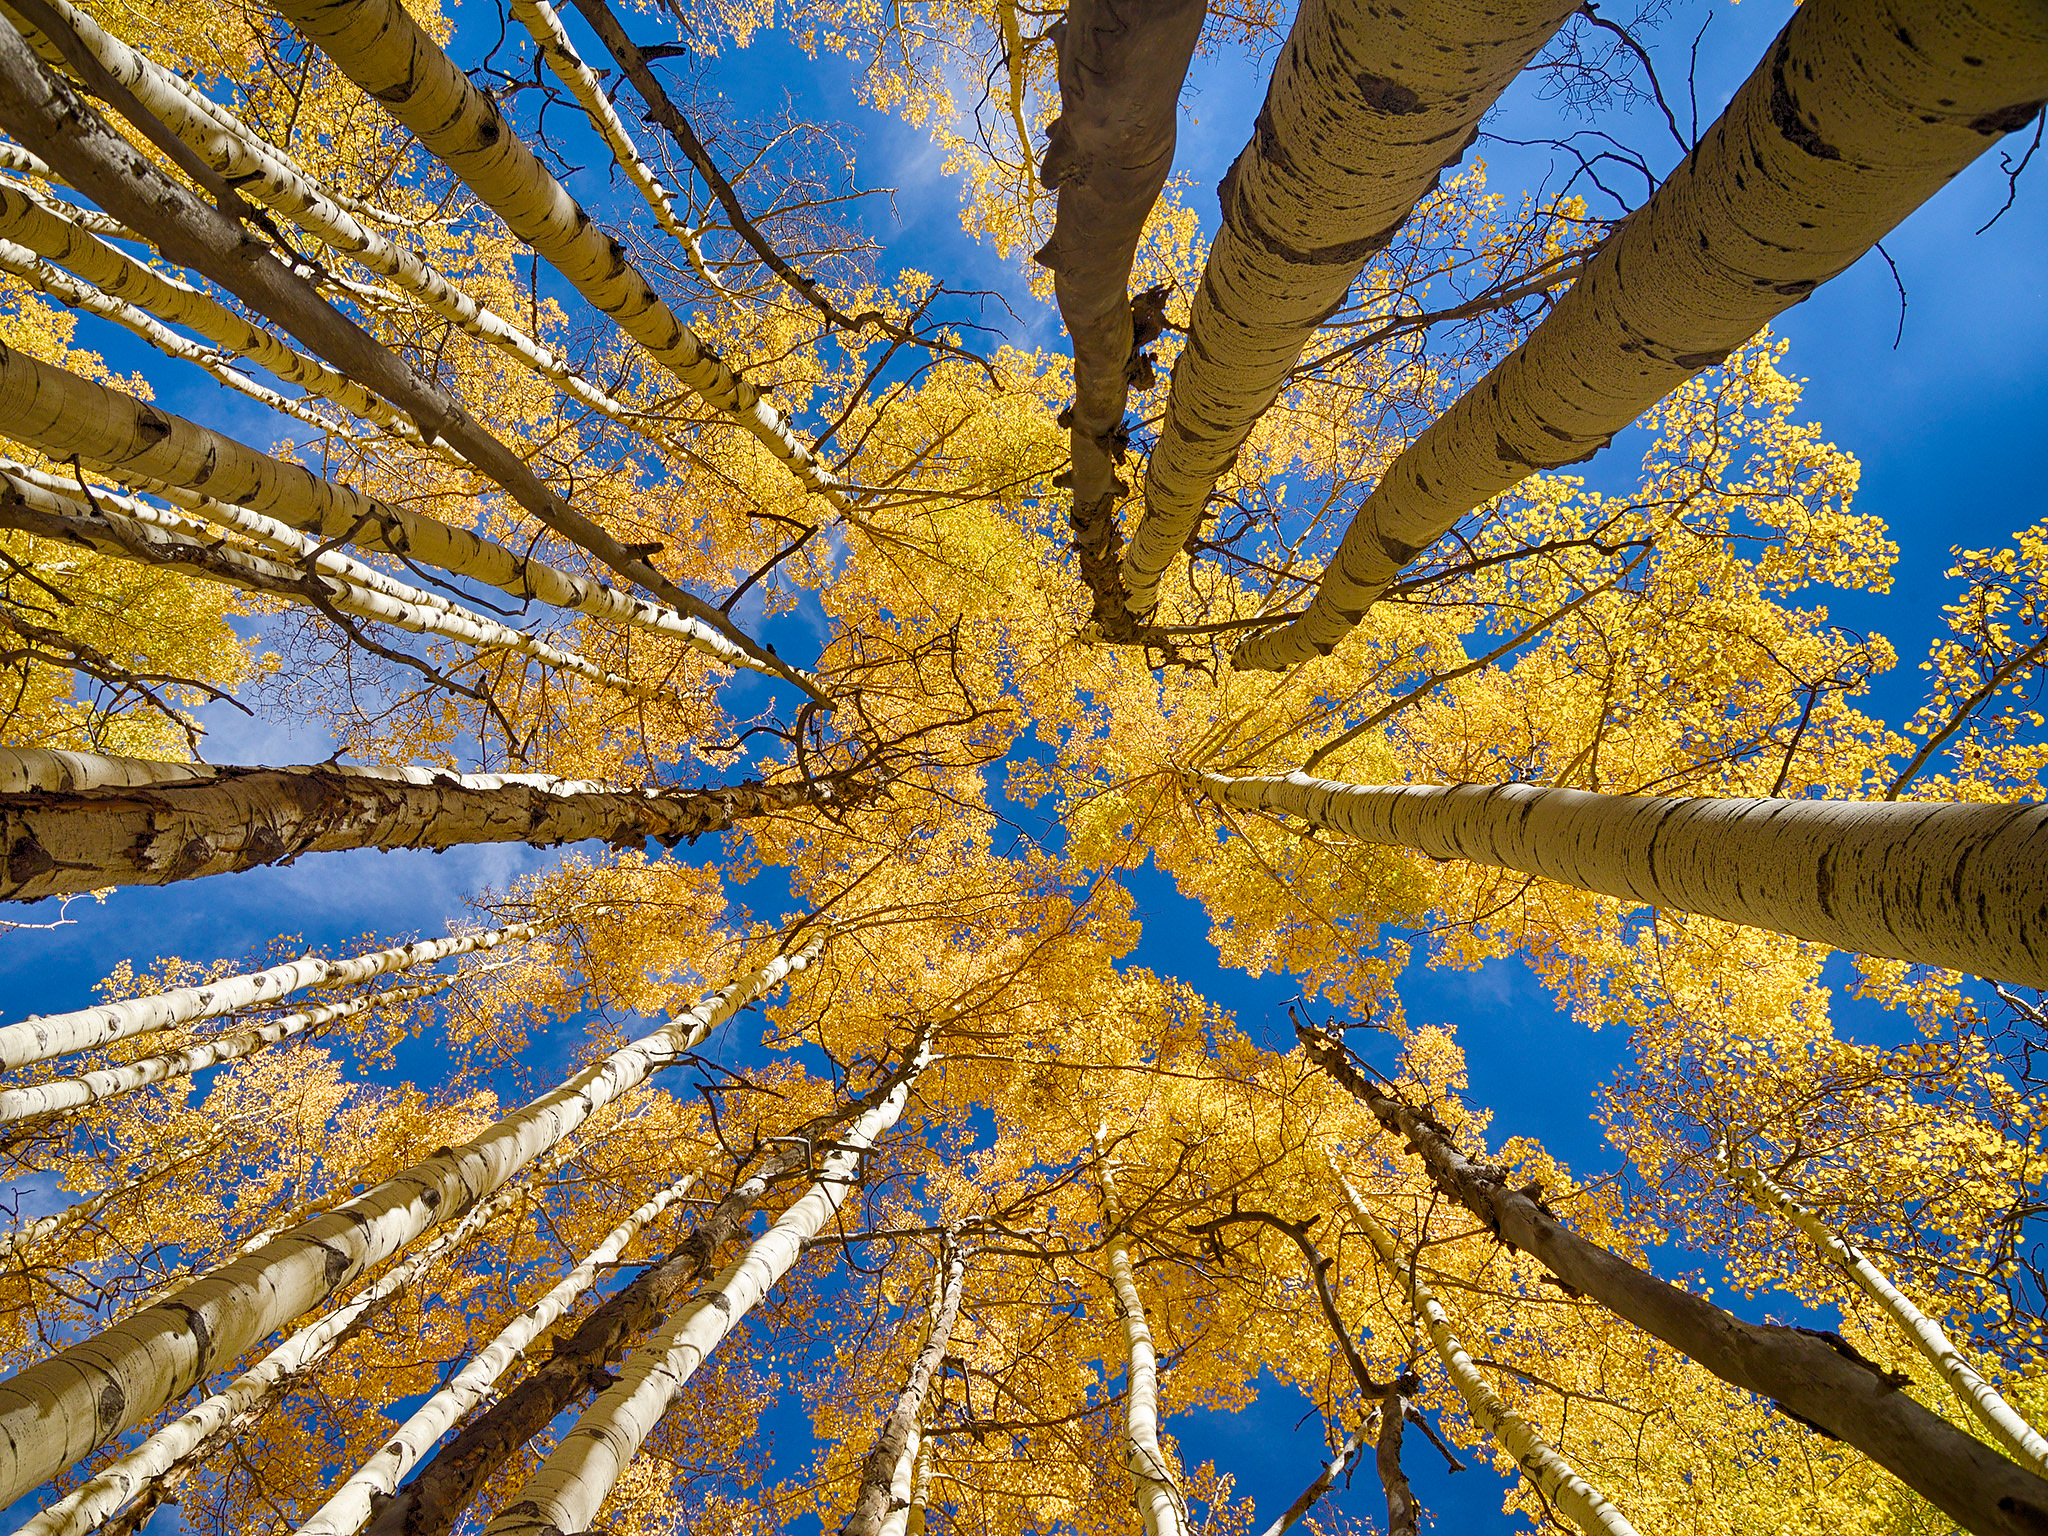 <div class='title'>           Among the Aspens         </div>                 <div class='description'>           An aspen forest reaches high overhead in this autumn scene found in Colorado's largest aspen grove, along the Kebler Pass Road in the Gunnison National Forest.         </div>